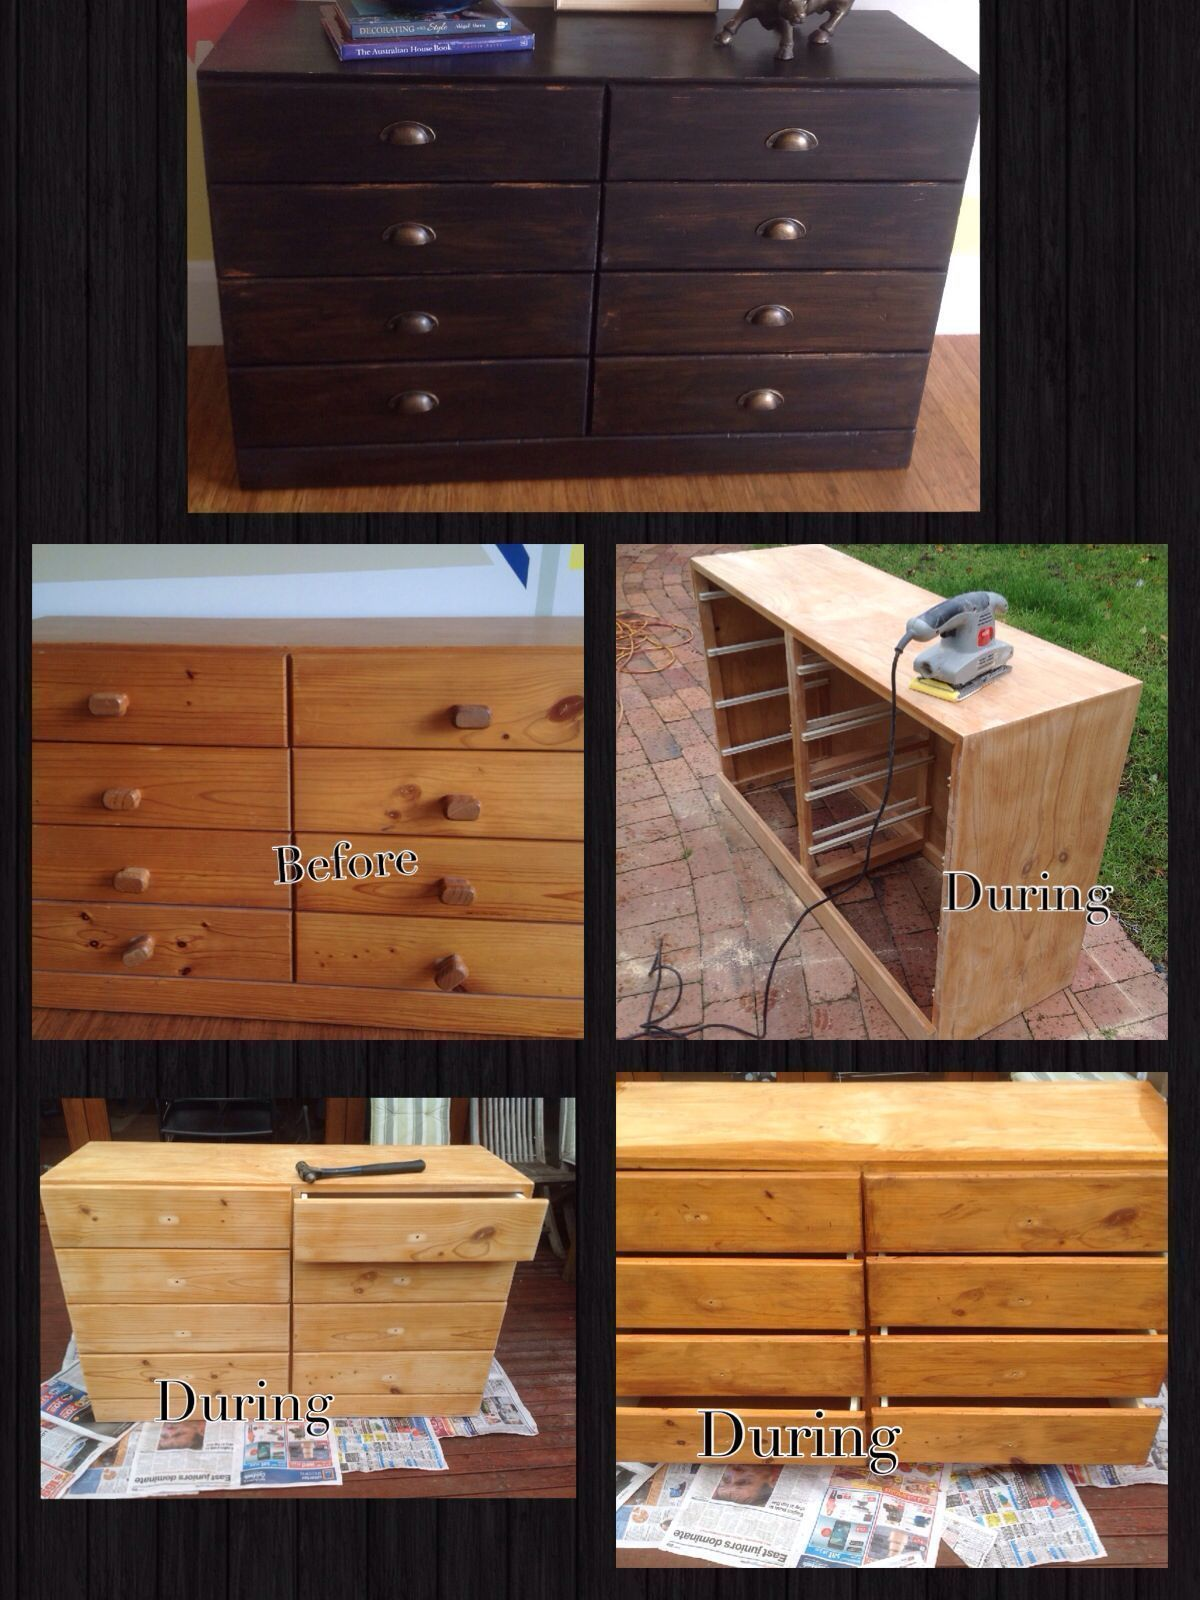 Industrial Shabby Chic Chest Of Drawers, Upcycled Furniture Before And